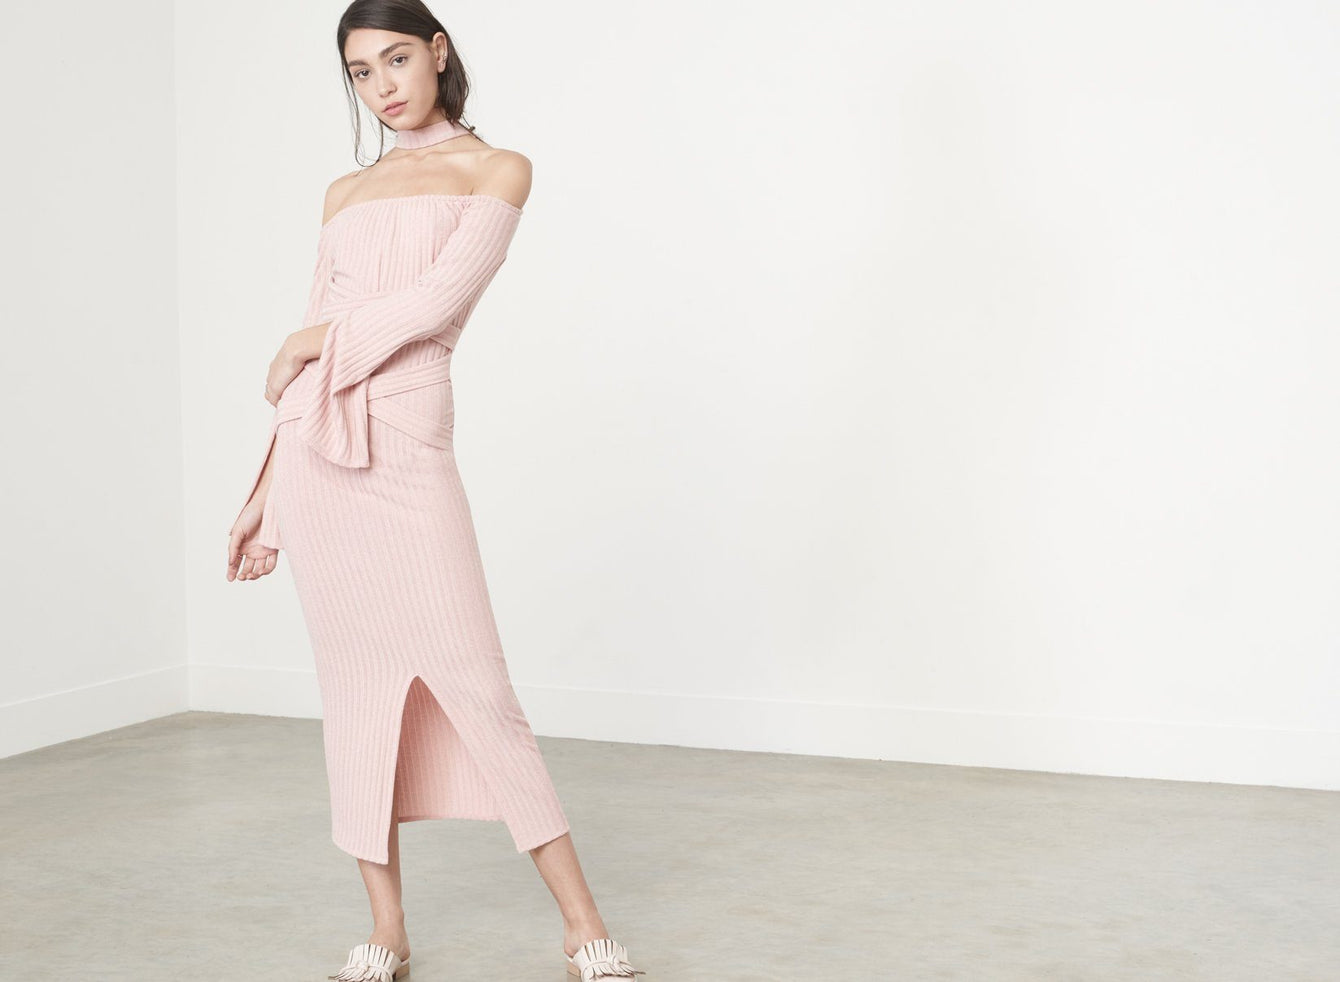 Deconstructed Collar Dress in Dusty Pink Knit